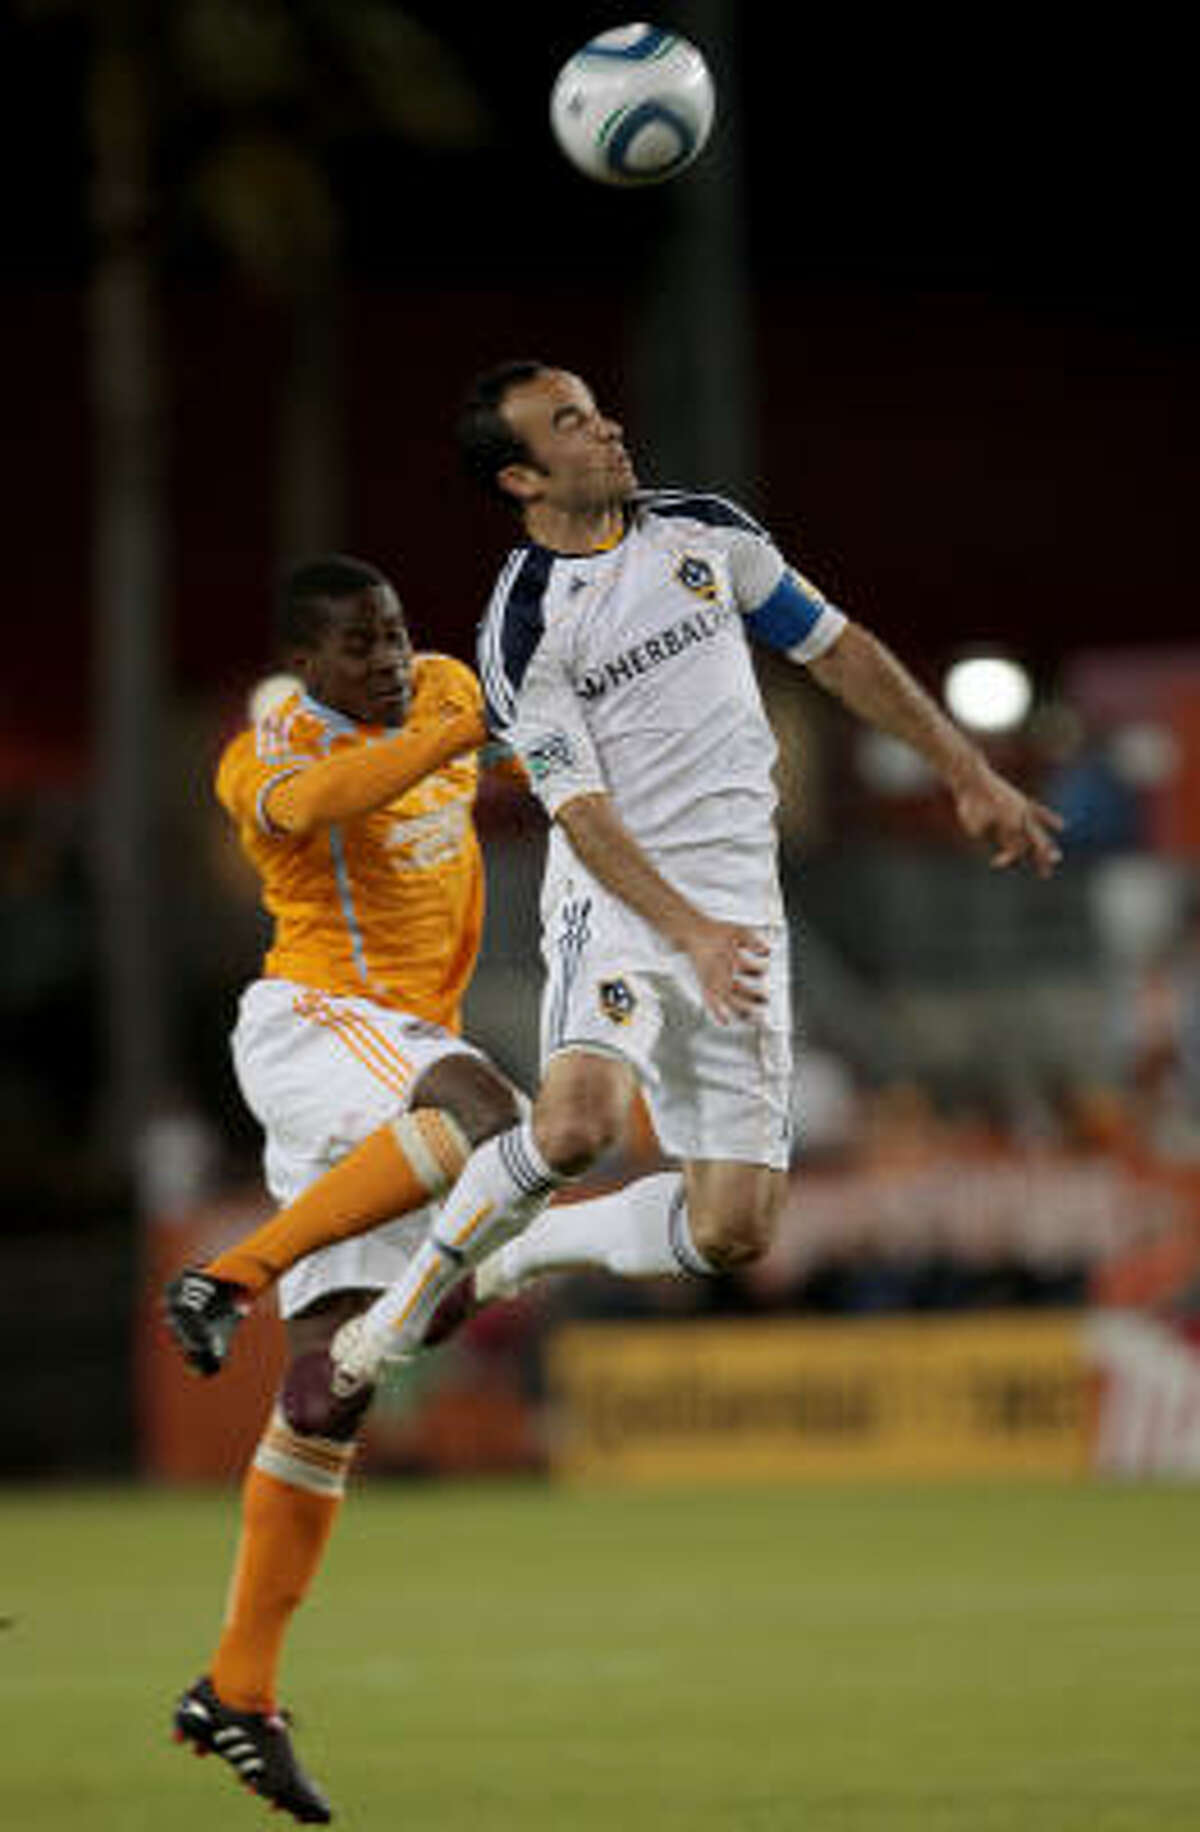 Houston's Lovel Palmer tries to defend Landon Donovan as he goes up for a header.